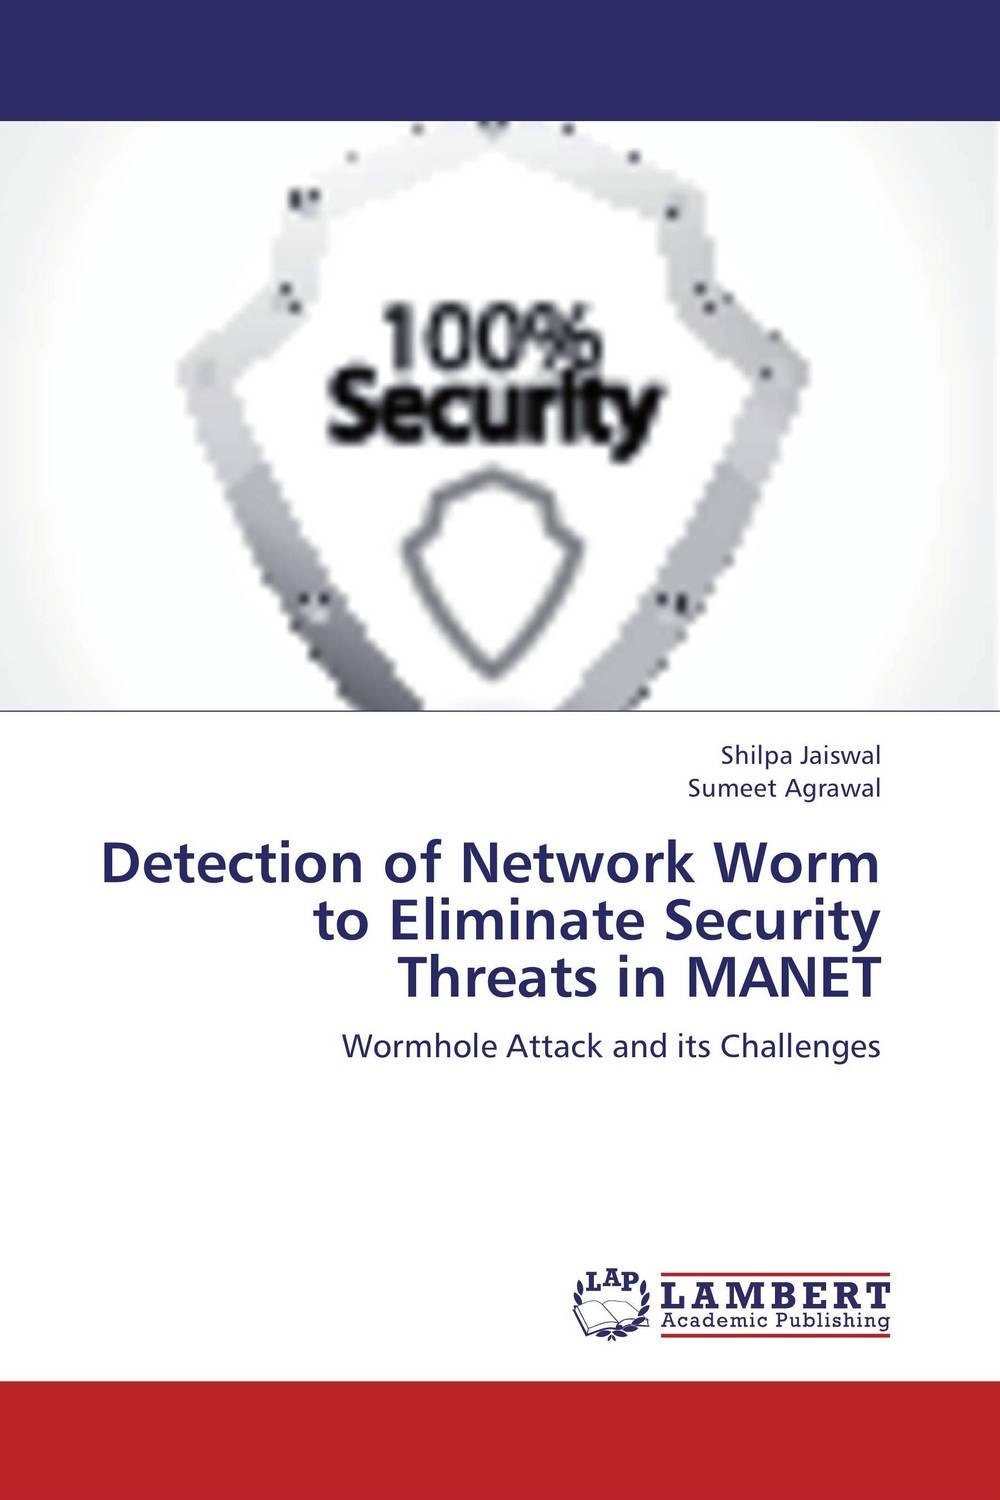 Detection of Network Worm to Eliminate Security Threats in MANET intrusion detection system architecture in wireless sensor network